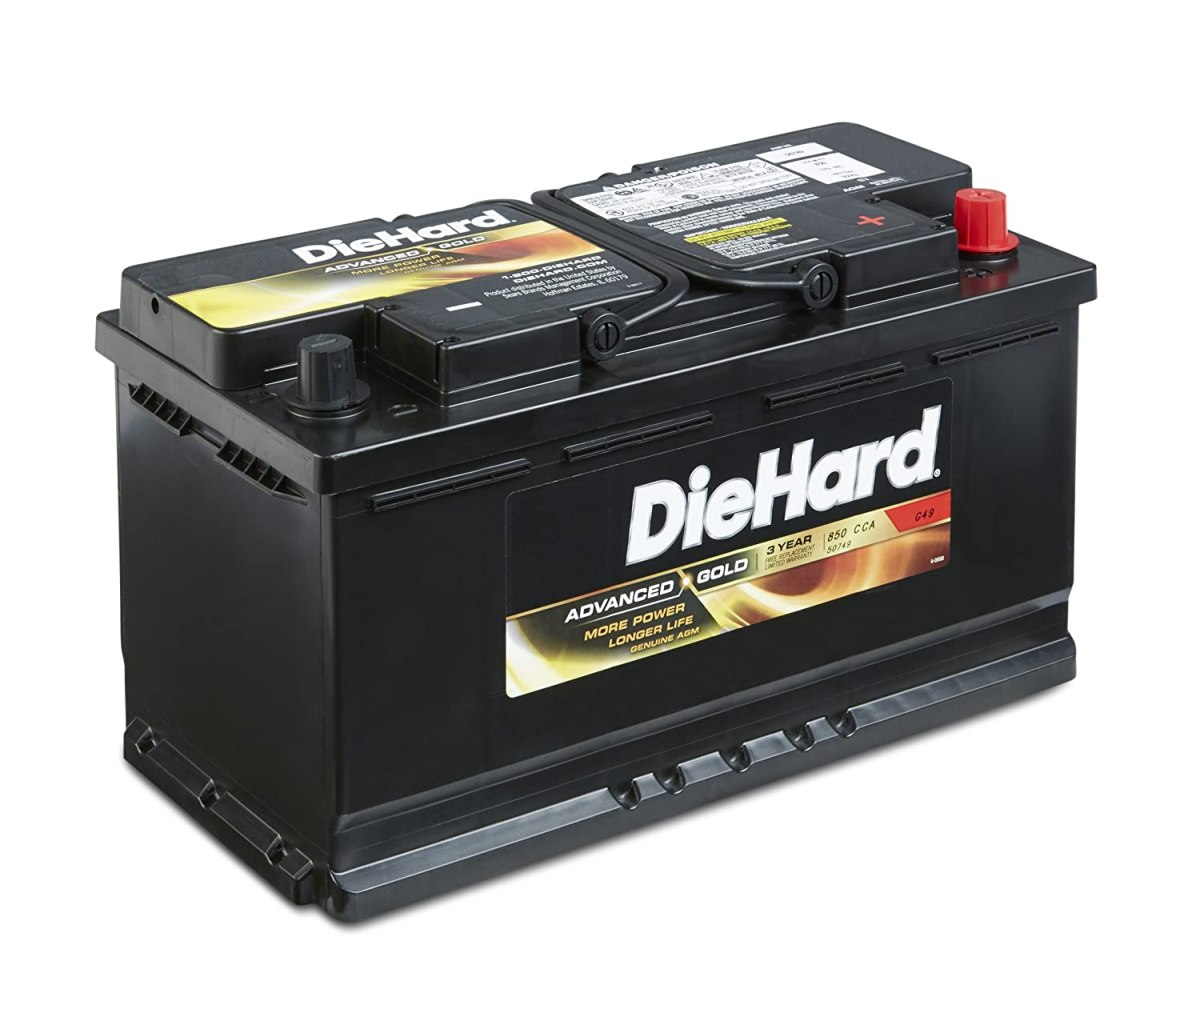 Best Car Batteries DieHard 50748 Group 48 lead_acid_battery